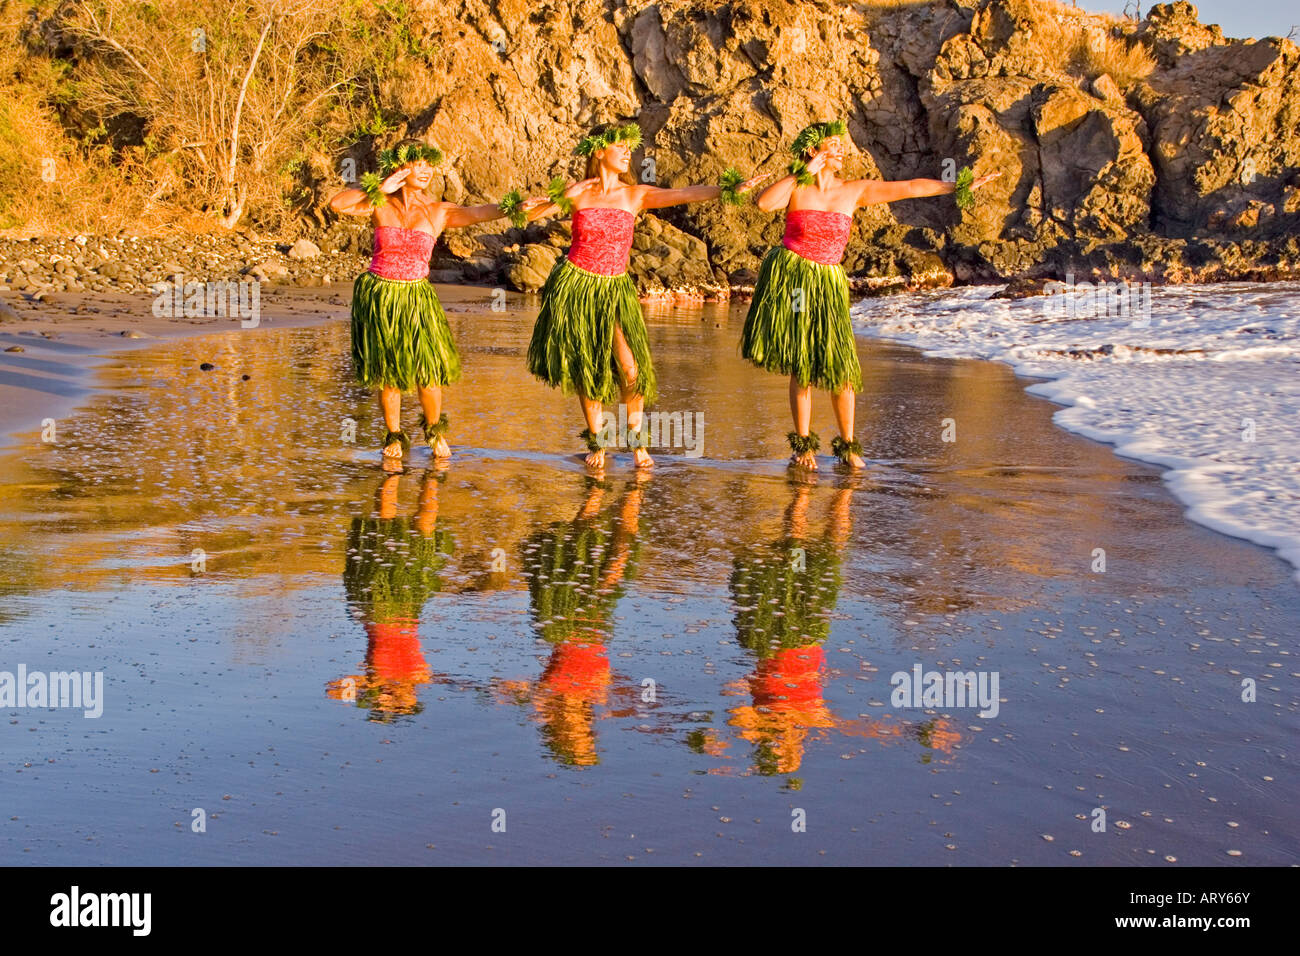 Three hula dancers in ti leaf skirts dance at the water's edge with their reflection at Olowalu, Maui. Stock Photo